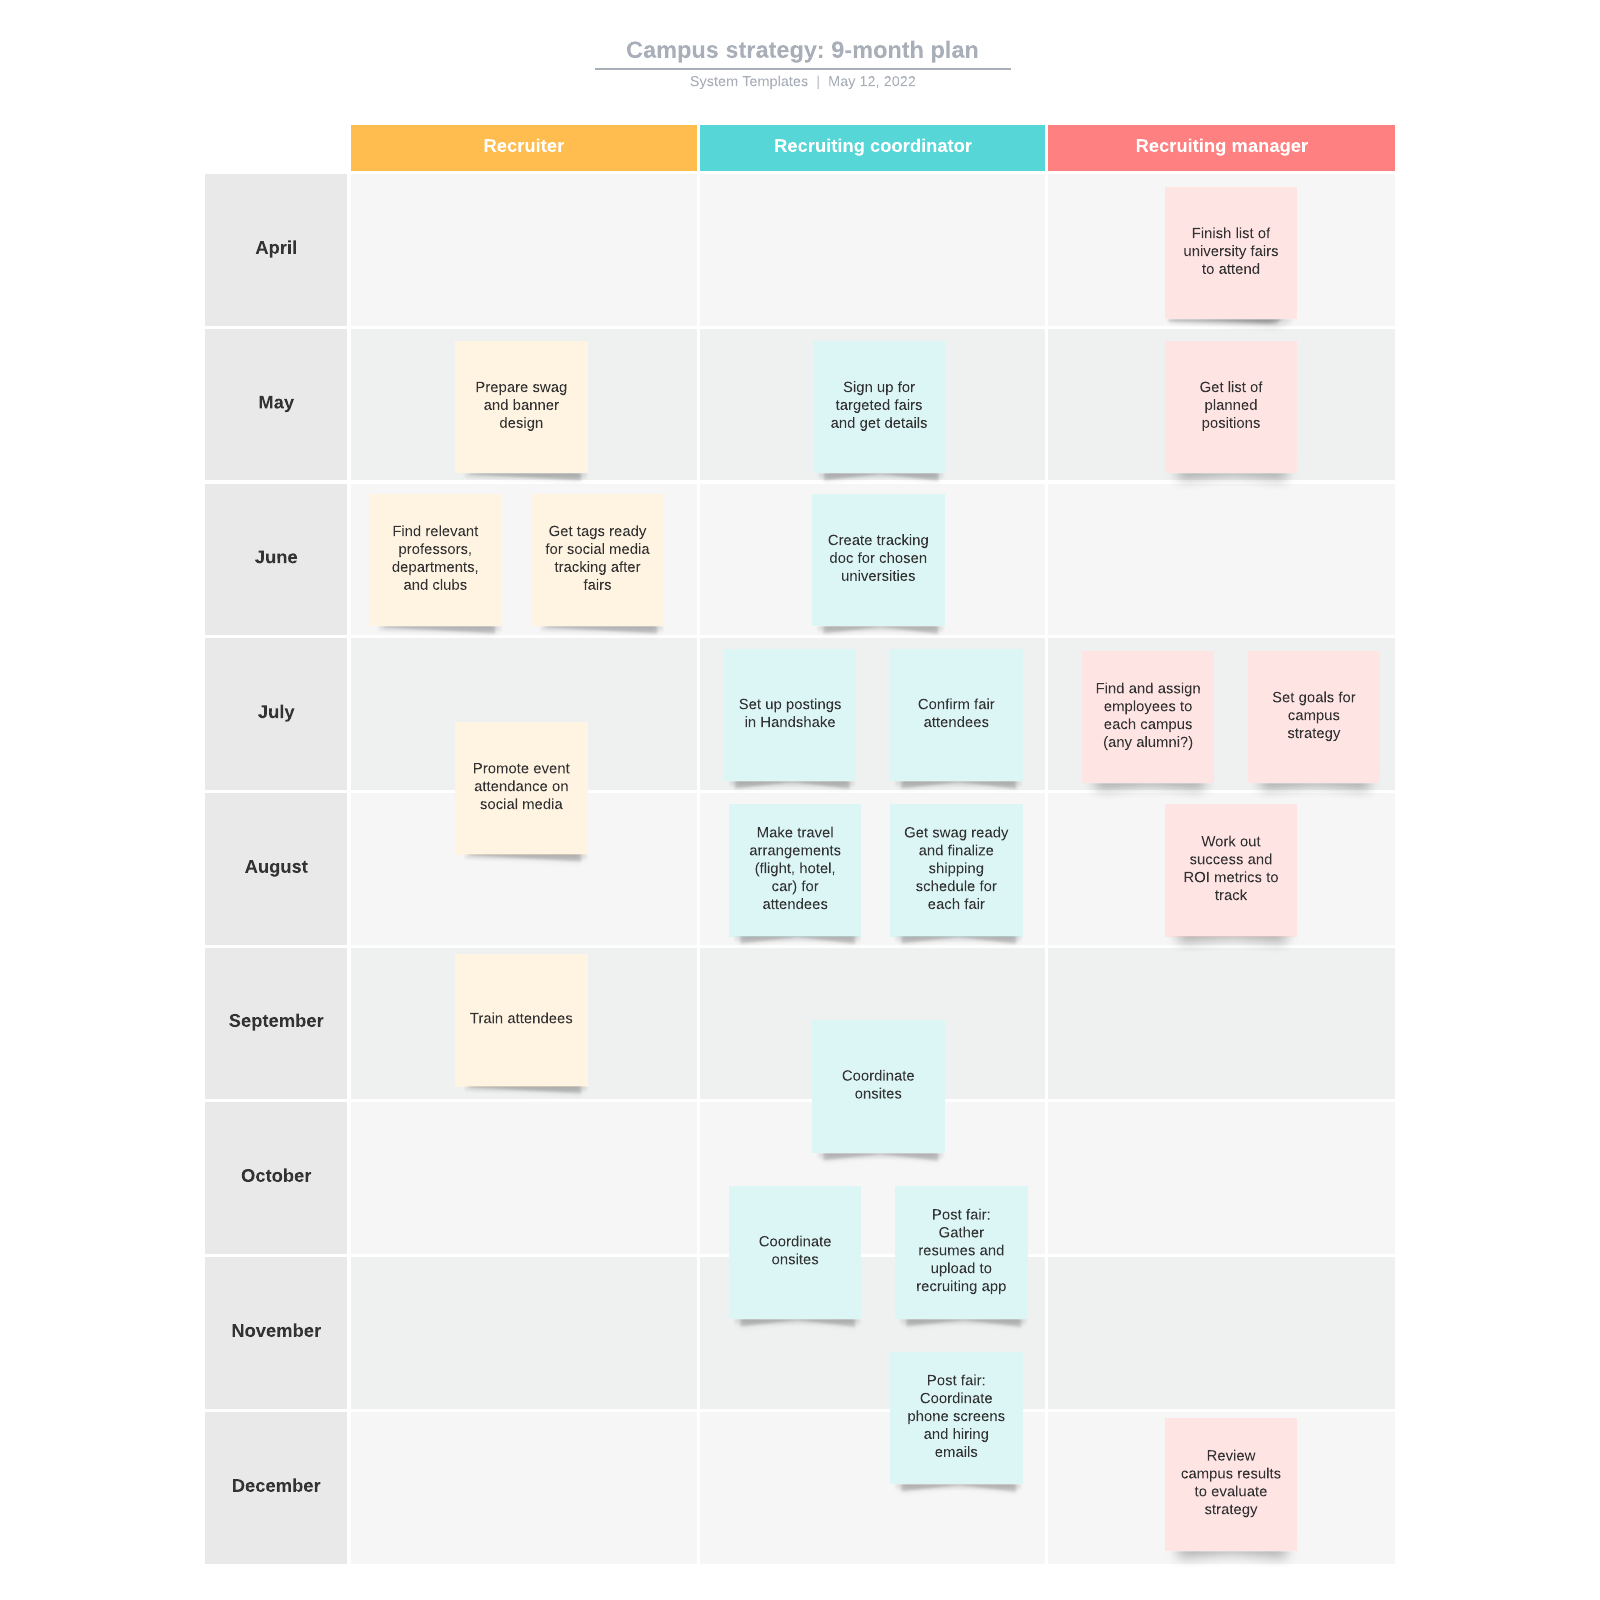 Campus strategy: 9-month plan